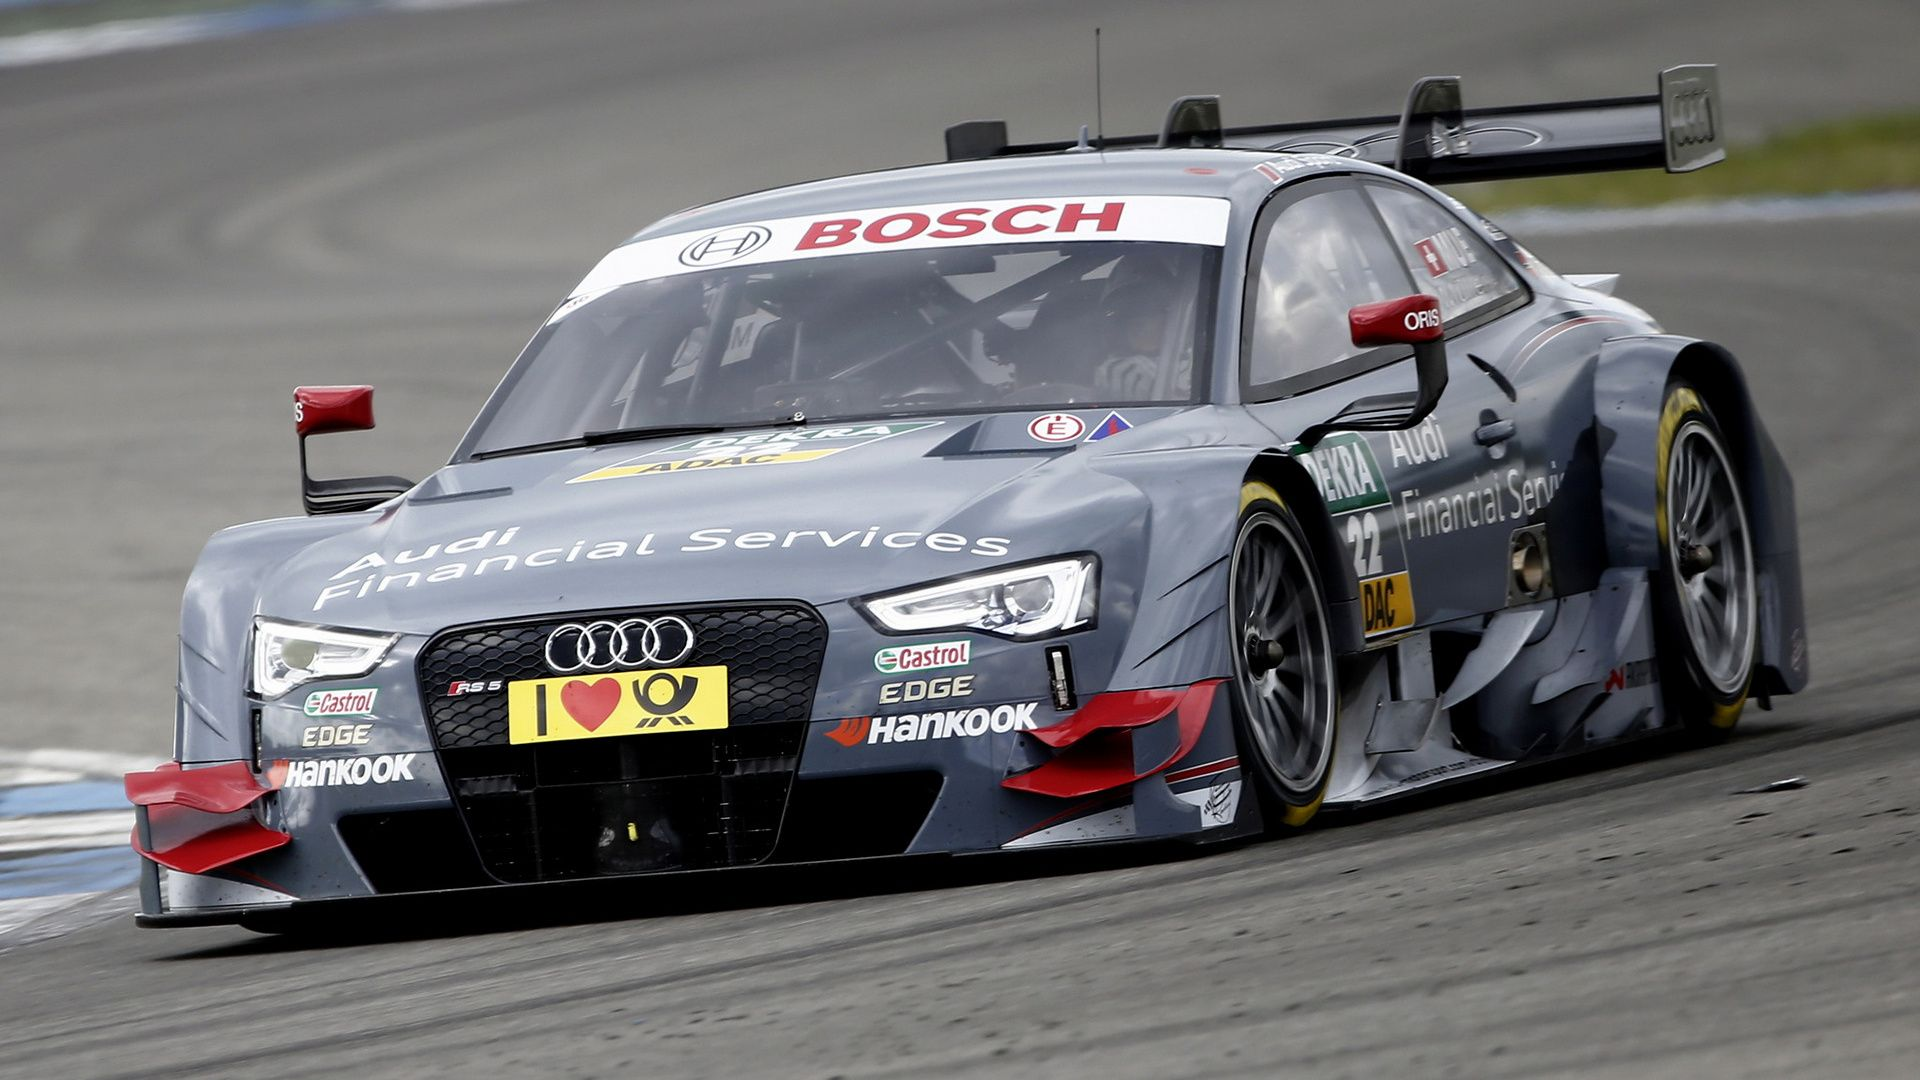 2014 Audi RS5 DTM Full HD Wallpapers and Backgrounds Image